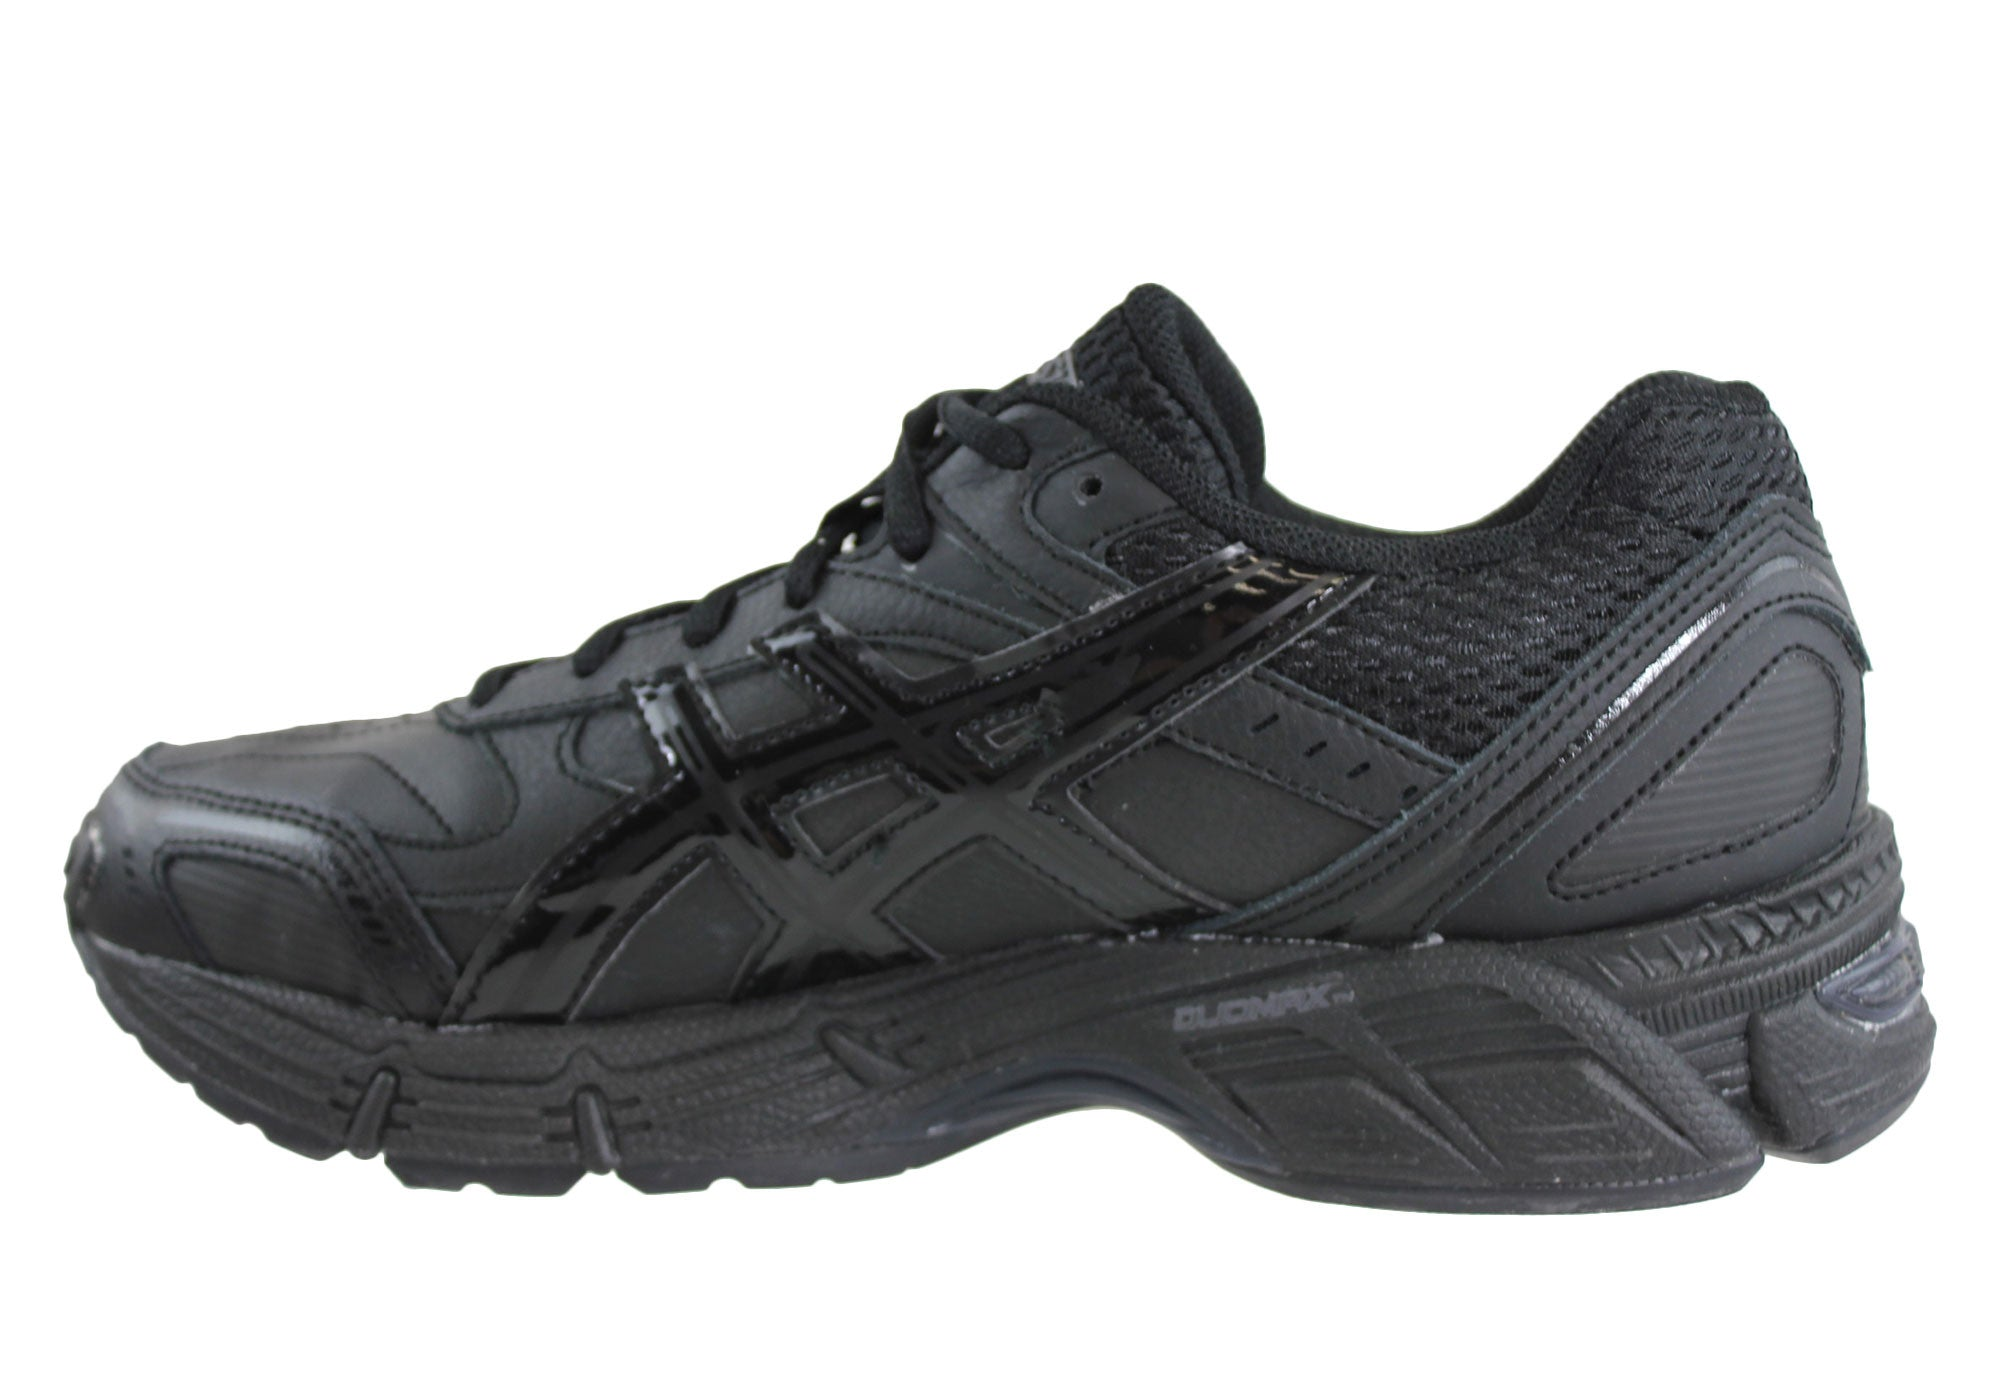 009ce9034e11 Asics Gel-180 TR Womens Leather Shoes (2E Extra Wide Fitting ...